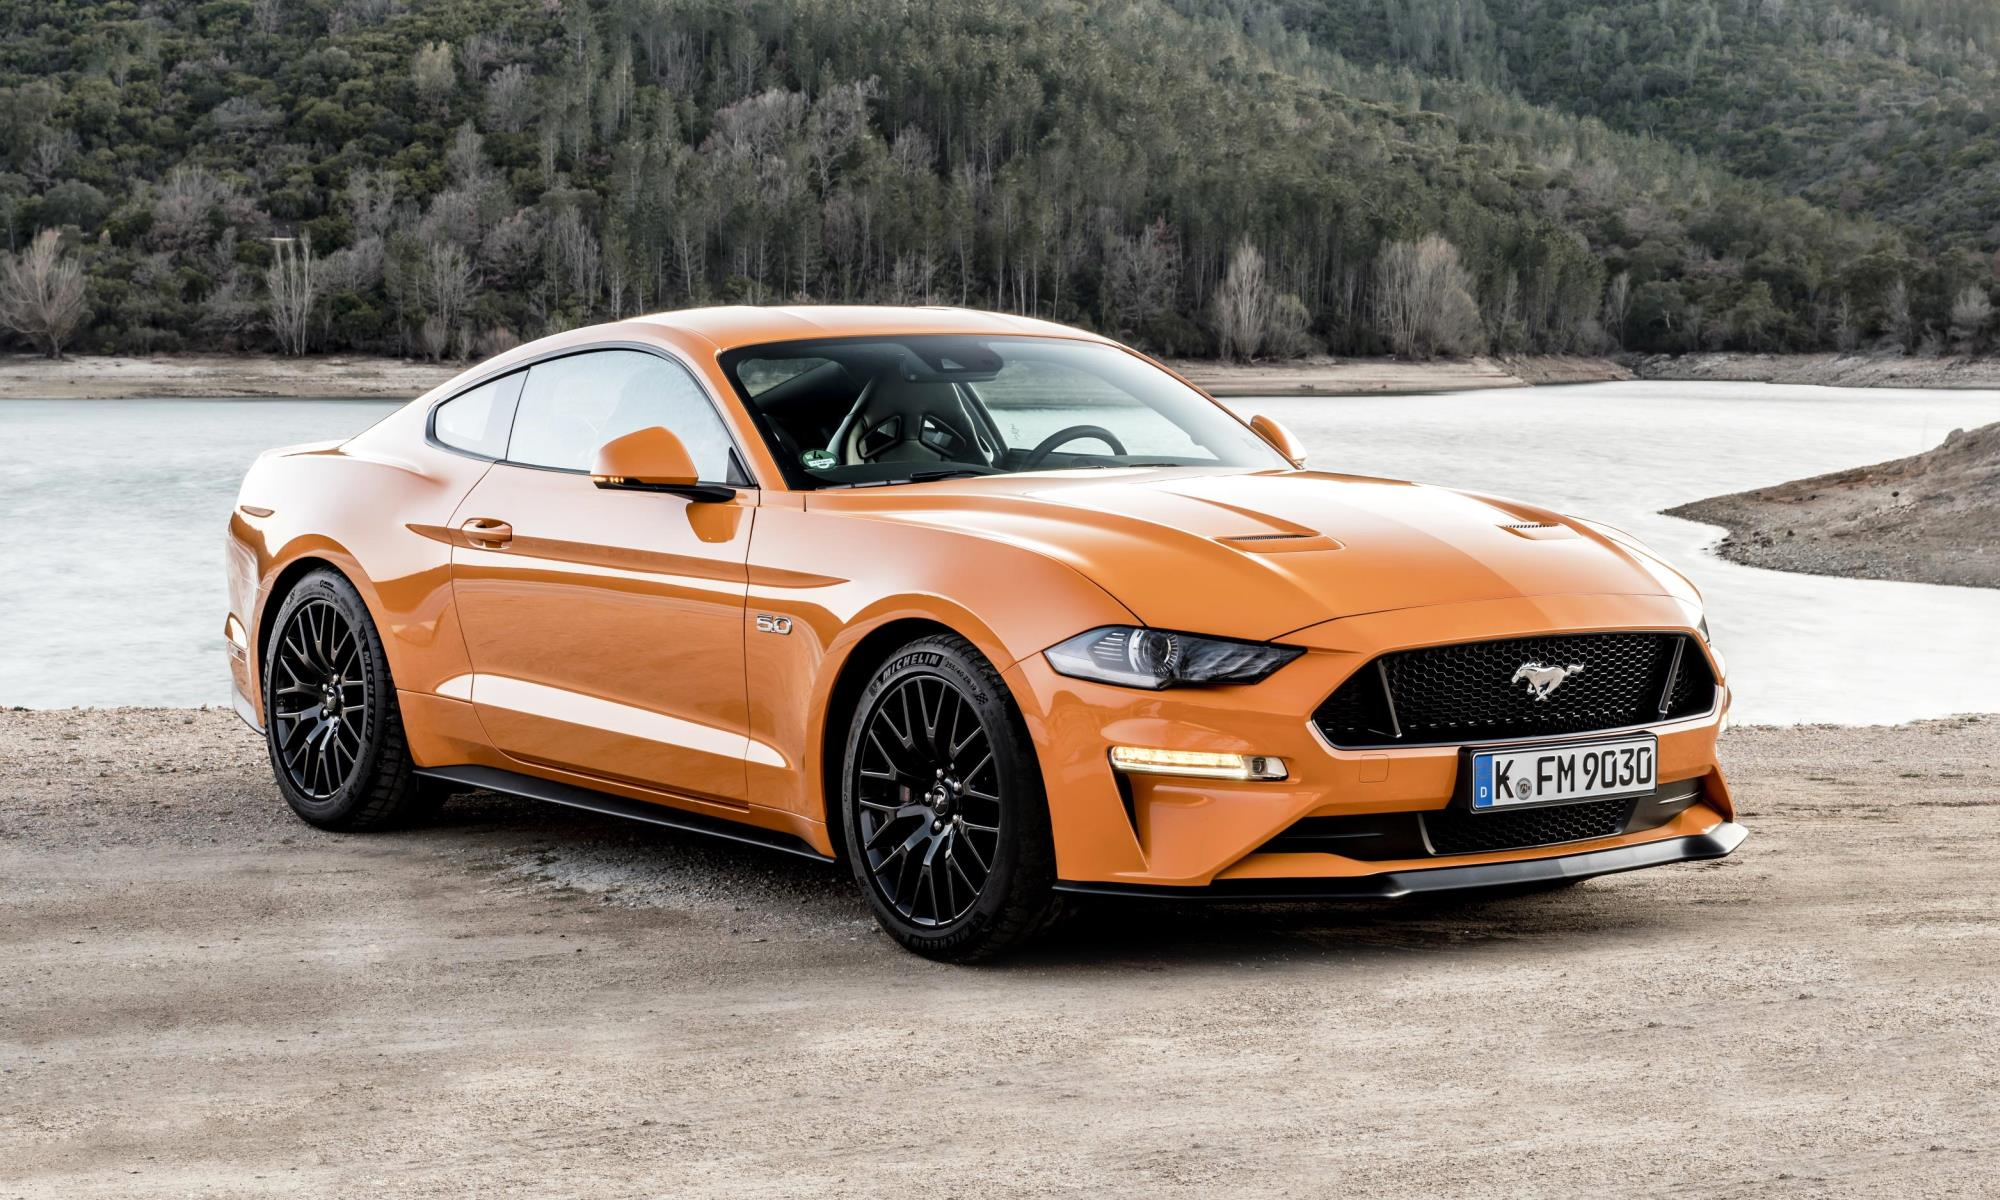 Facelifted Ford Mustang pricing